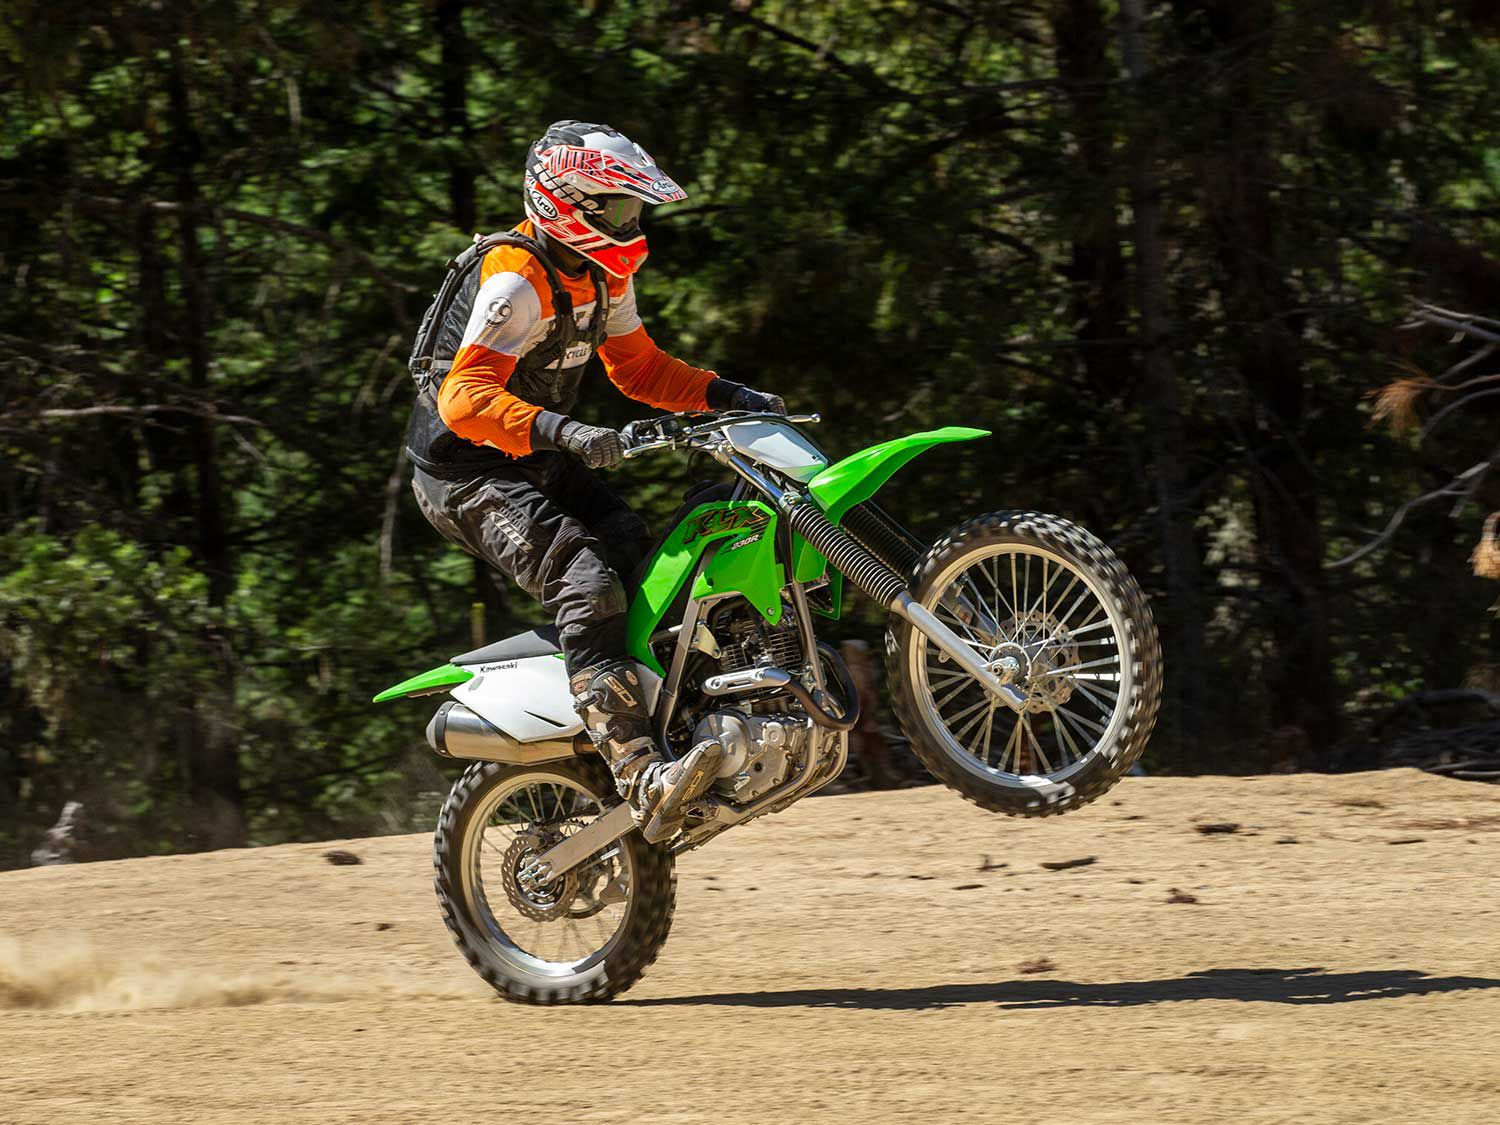 With a 40-pound weight loss and nicer suspension, the KLX230R is much easier to land a jump with.